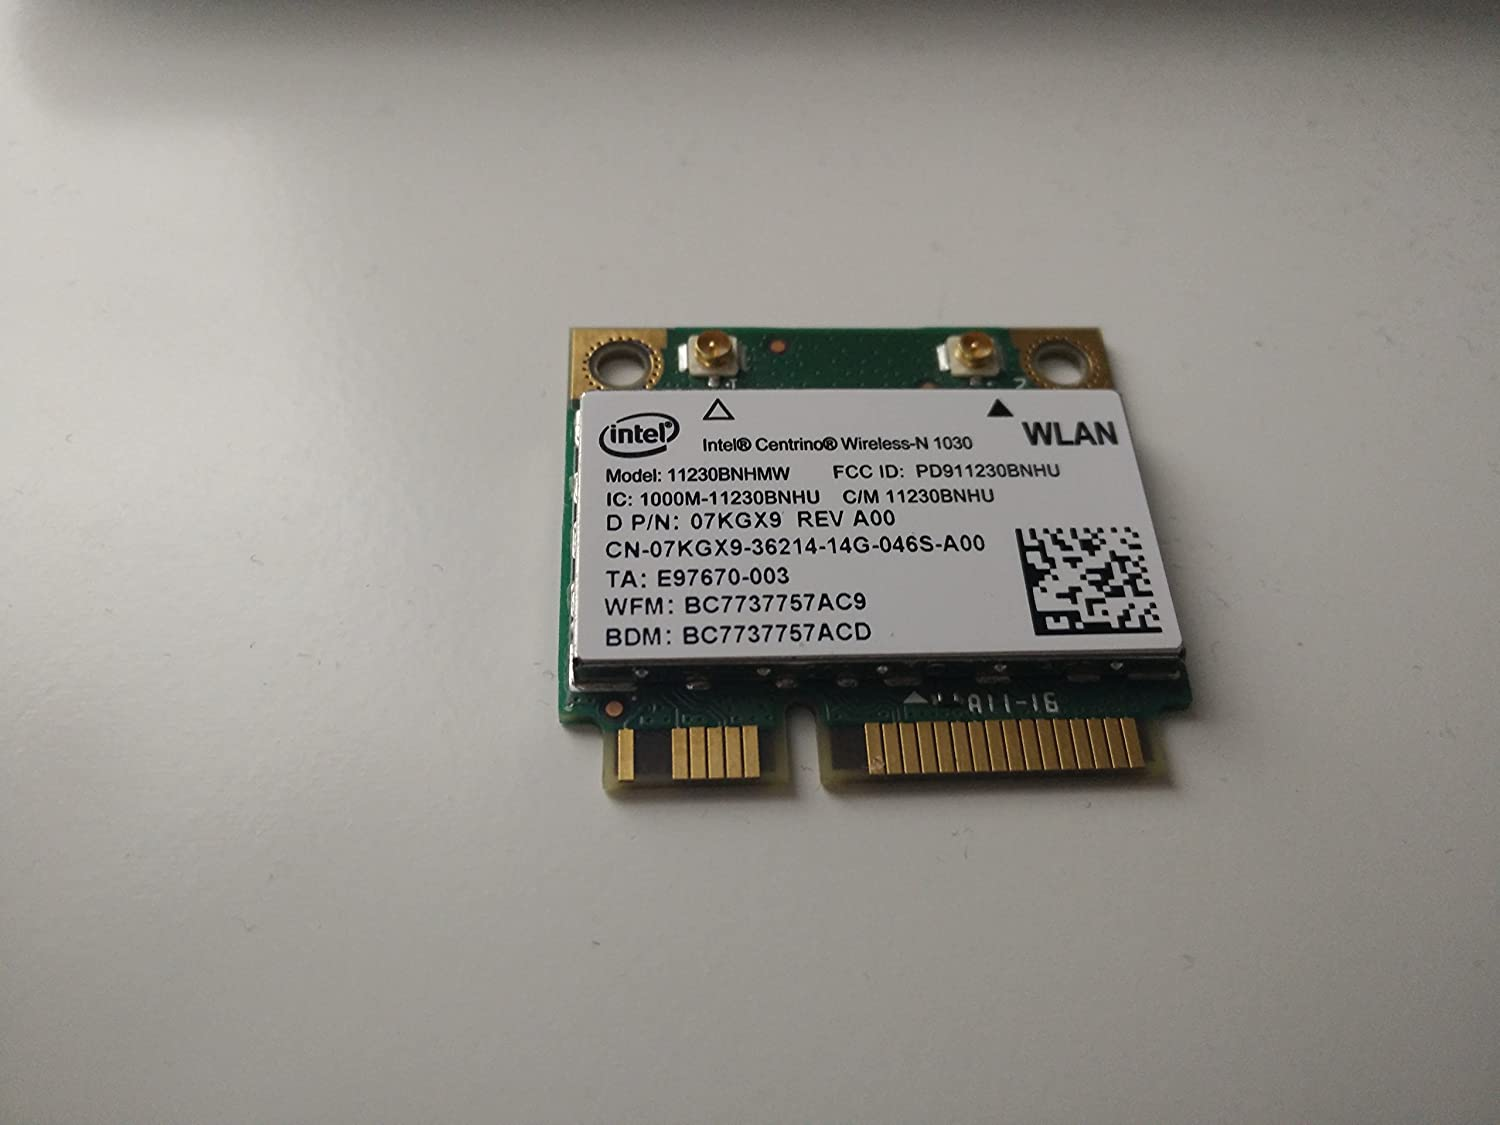 Laptop Network Adapters Wireless Card for Intel 1030 11230BNHMW ...